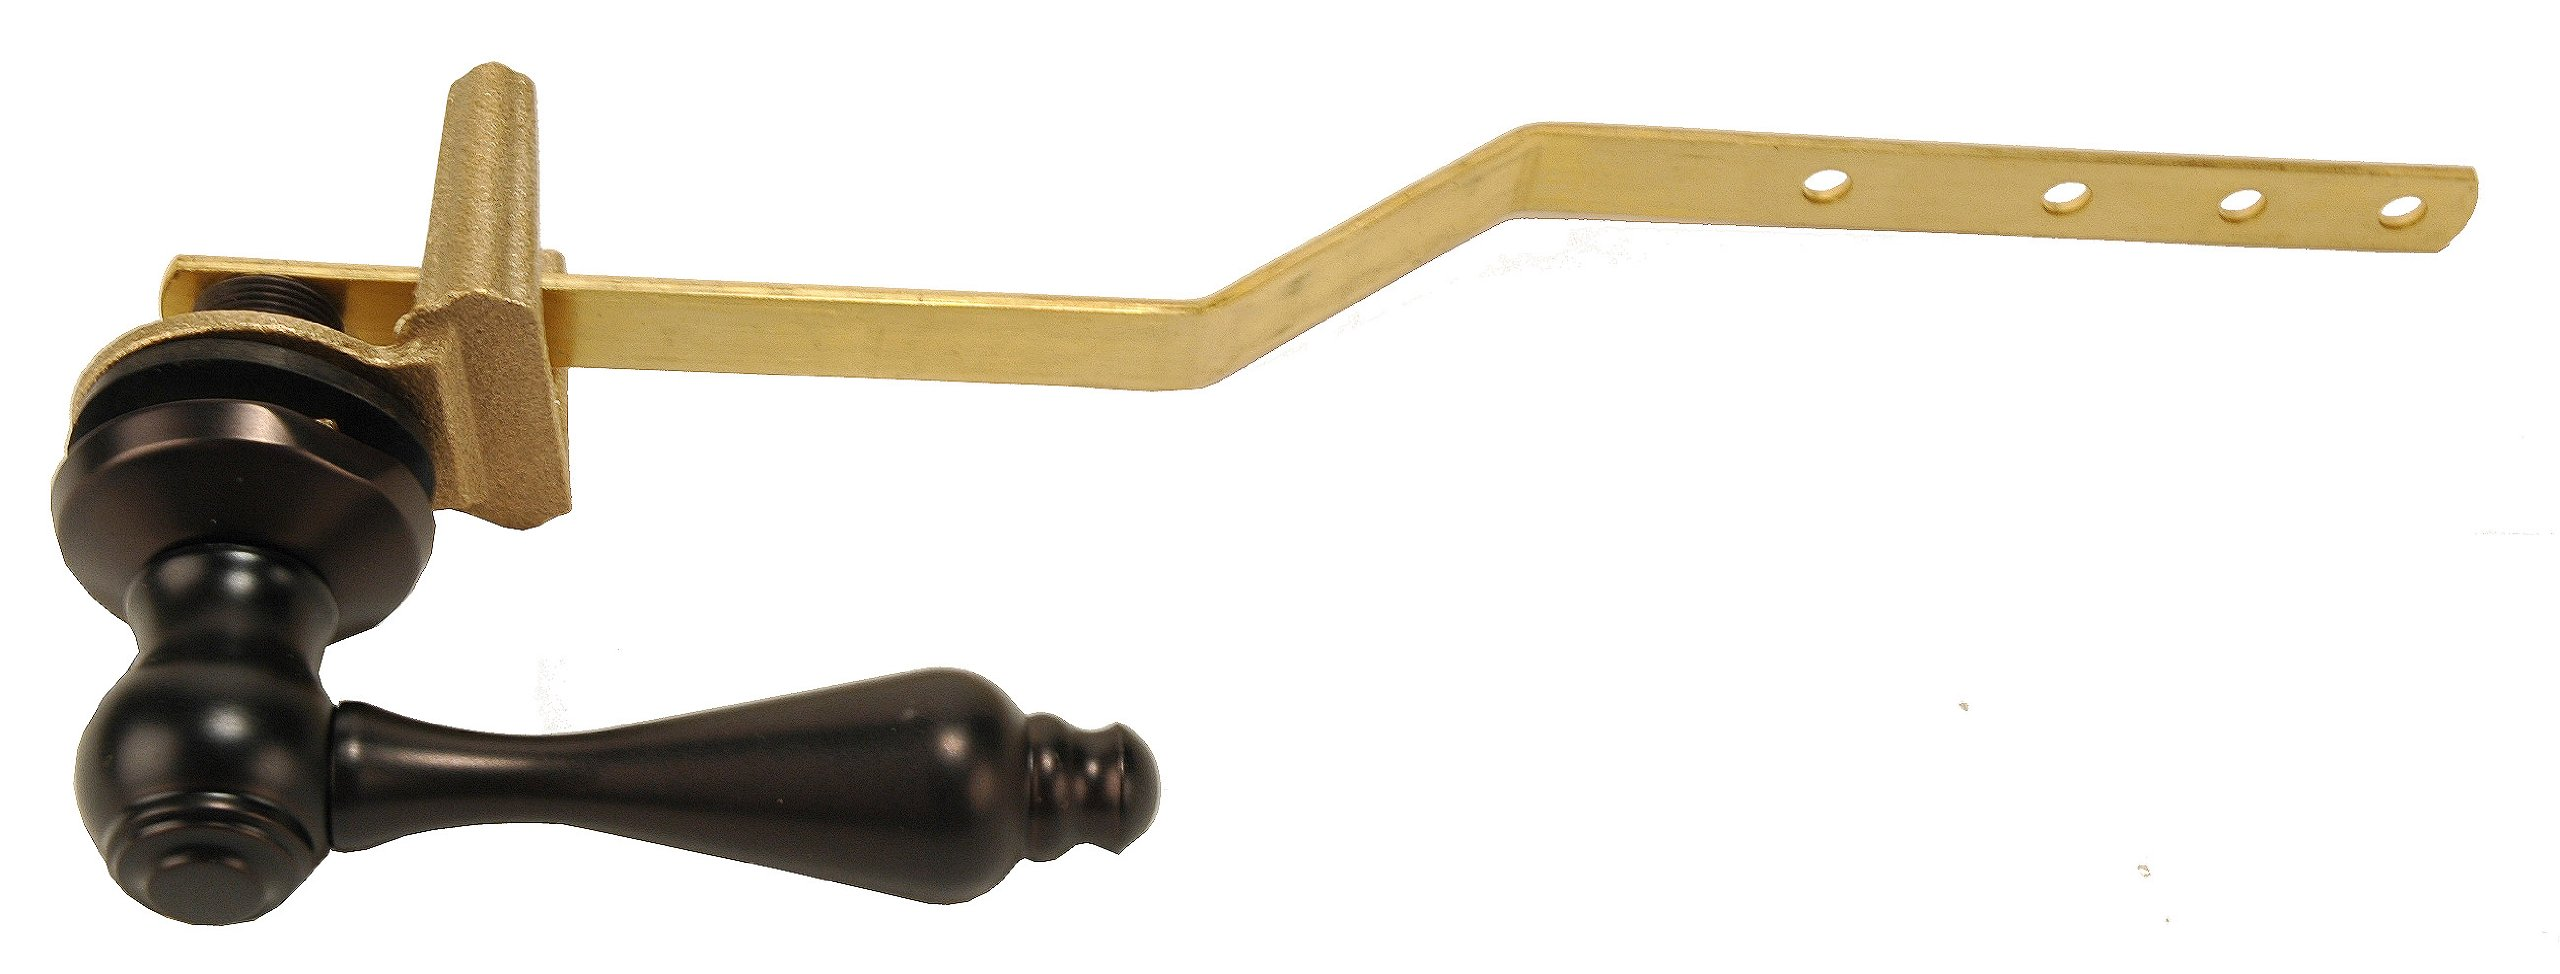 Toilet Tank Lever, Oil Rubbed Bronze Finish, Frontal Mount - By Plumb USA